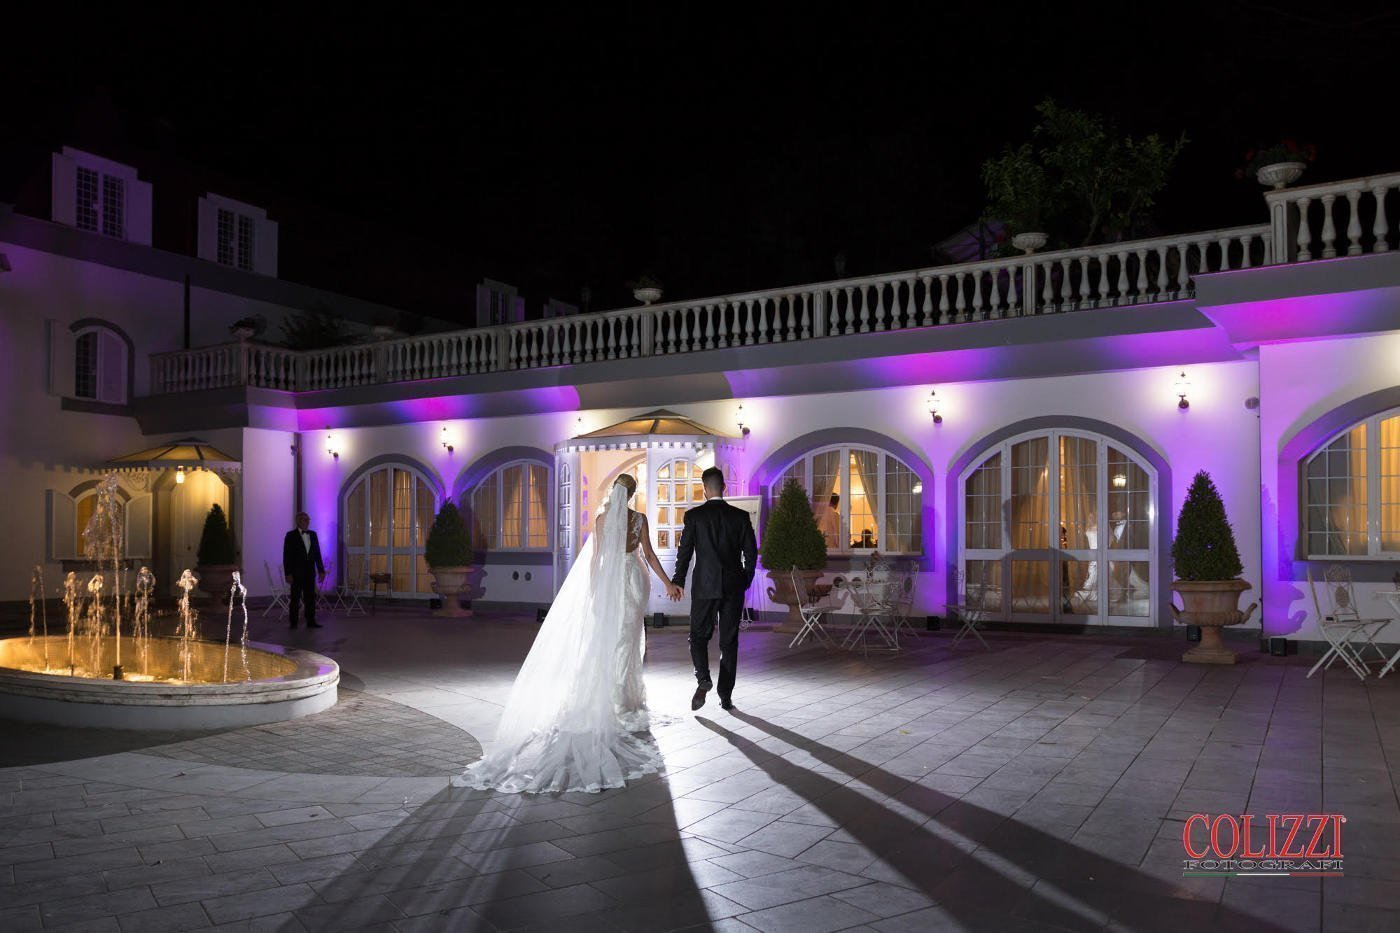 Location Matrimonio Roma - Villa York